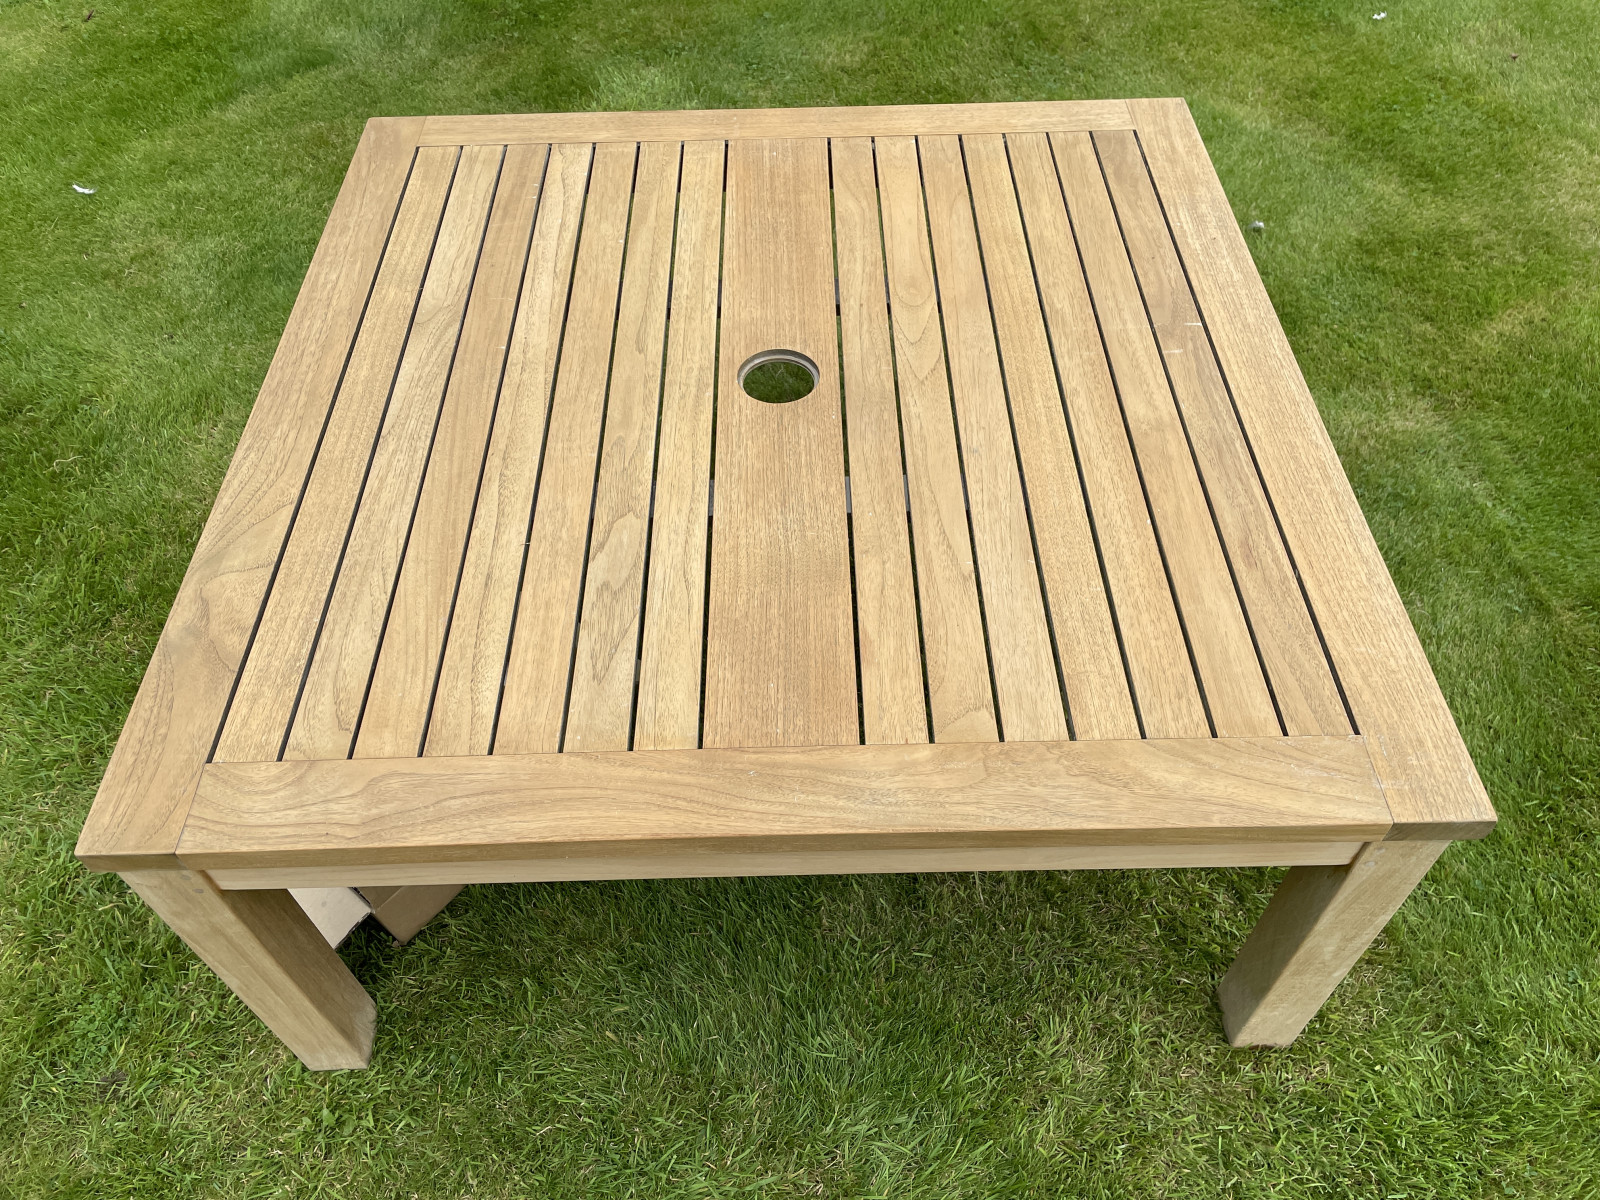 A teak table after being cleaned, colour guarded, and wasp protected.